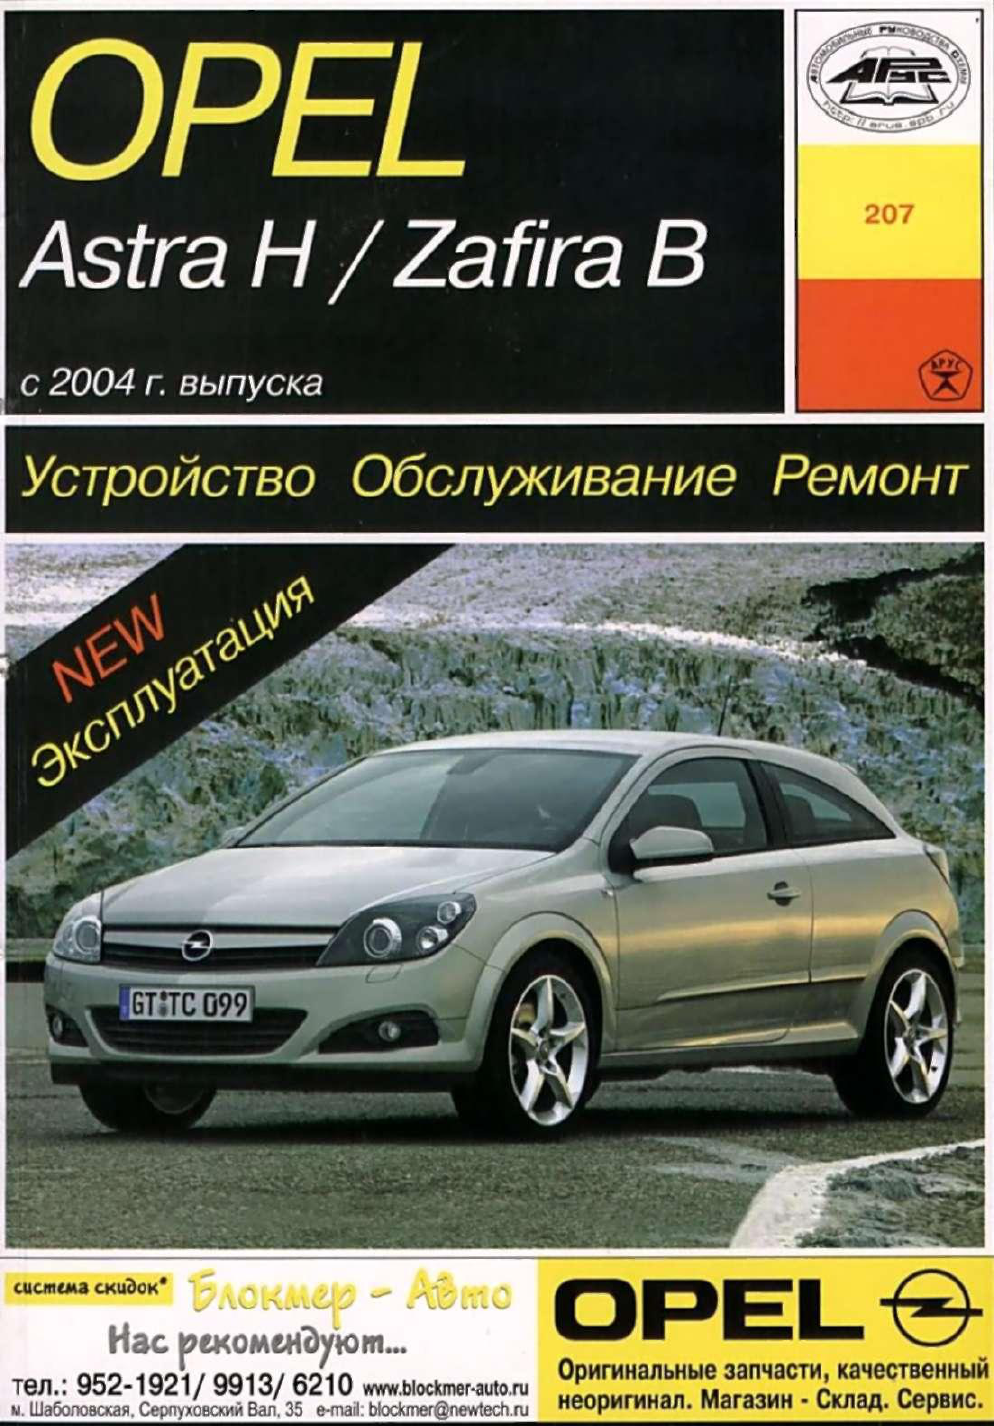 See our other Opel Astra Manuals: